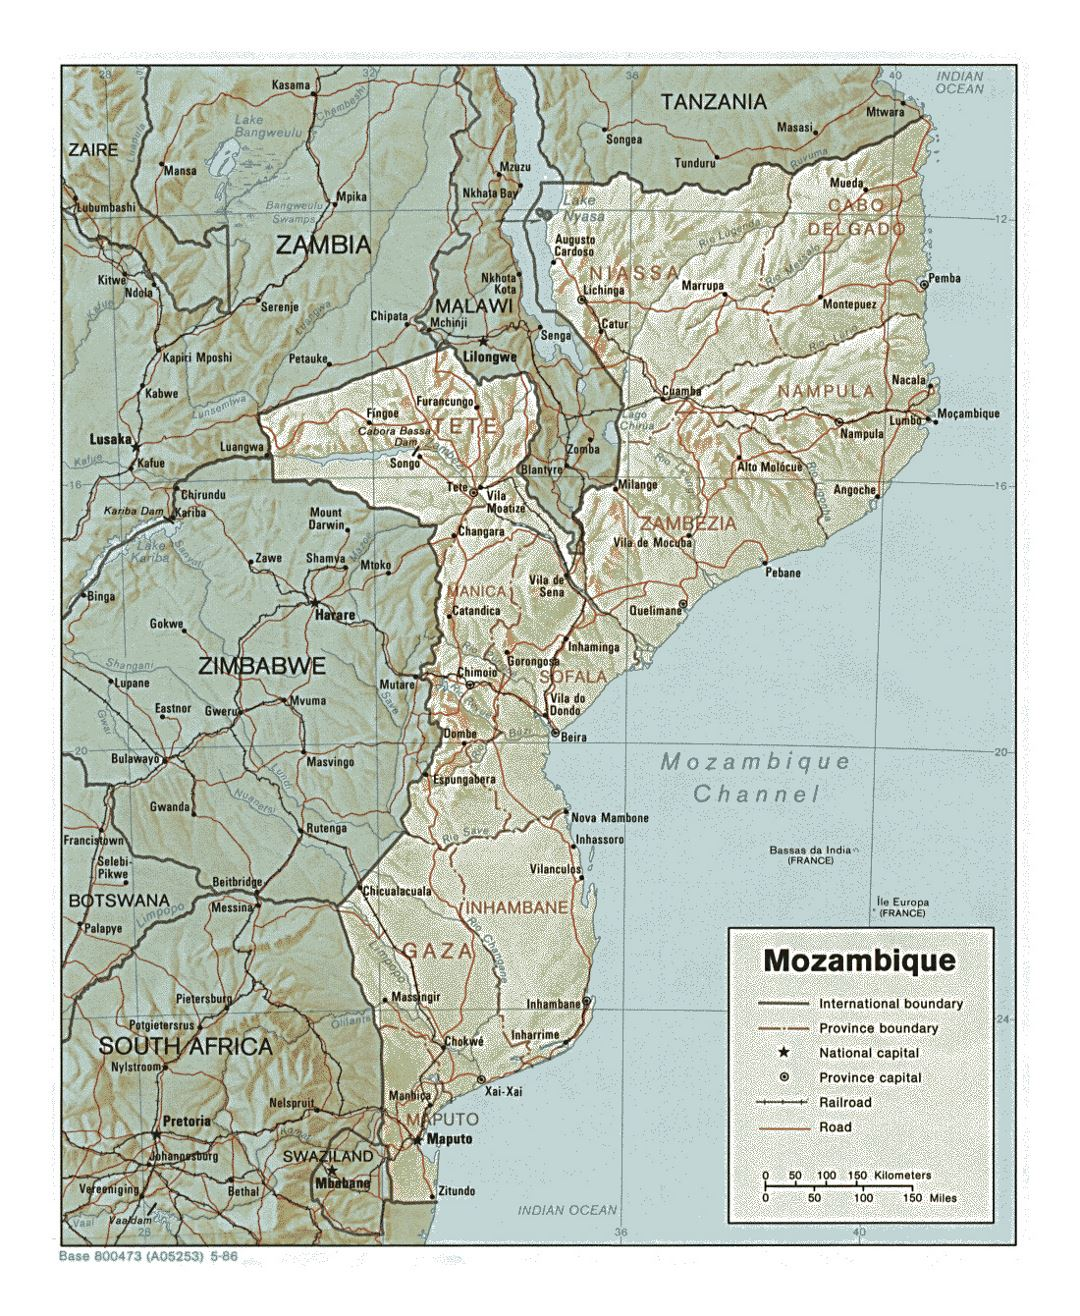 Detailed political and administrative map of Mozambique with relief, roads, railroads and major cities - 1986